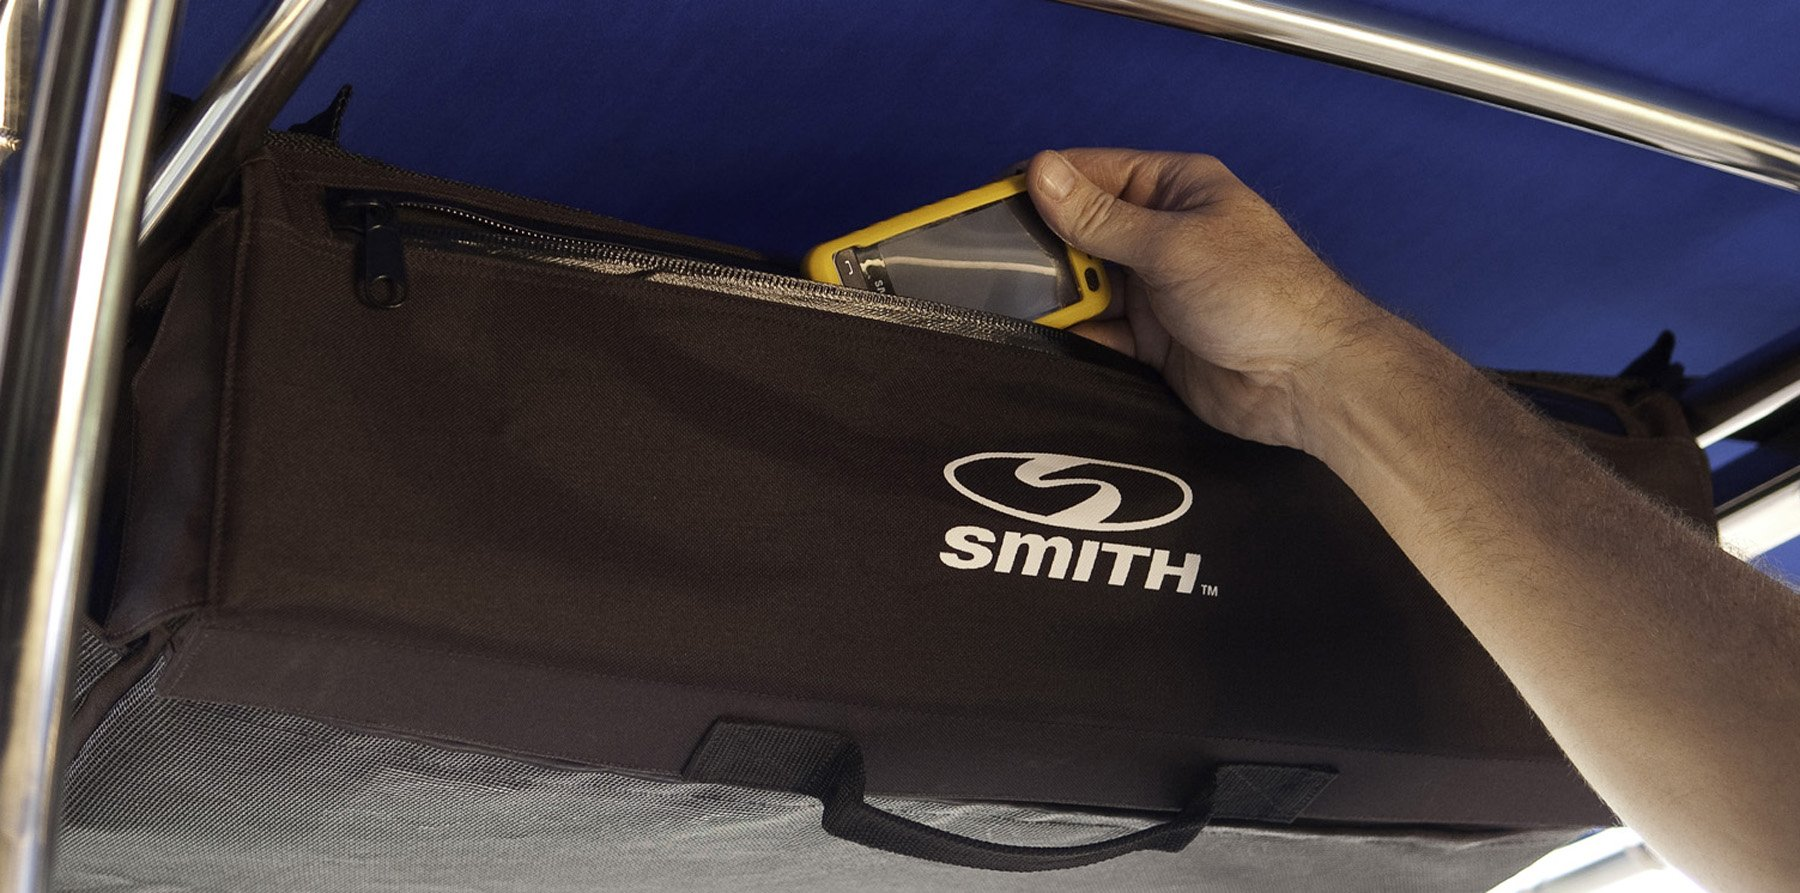 CE Smith T-Top Storage Bag for Life Vests & Other Boating Essentials-Boating and Fishing Accessories by CE Smith